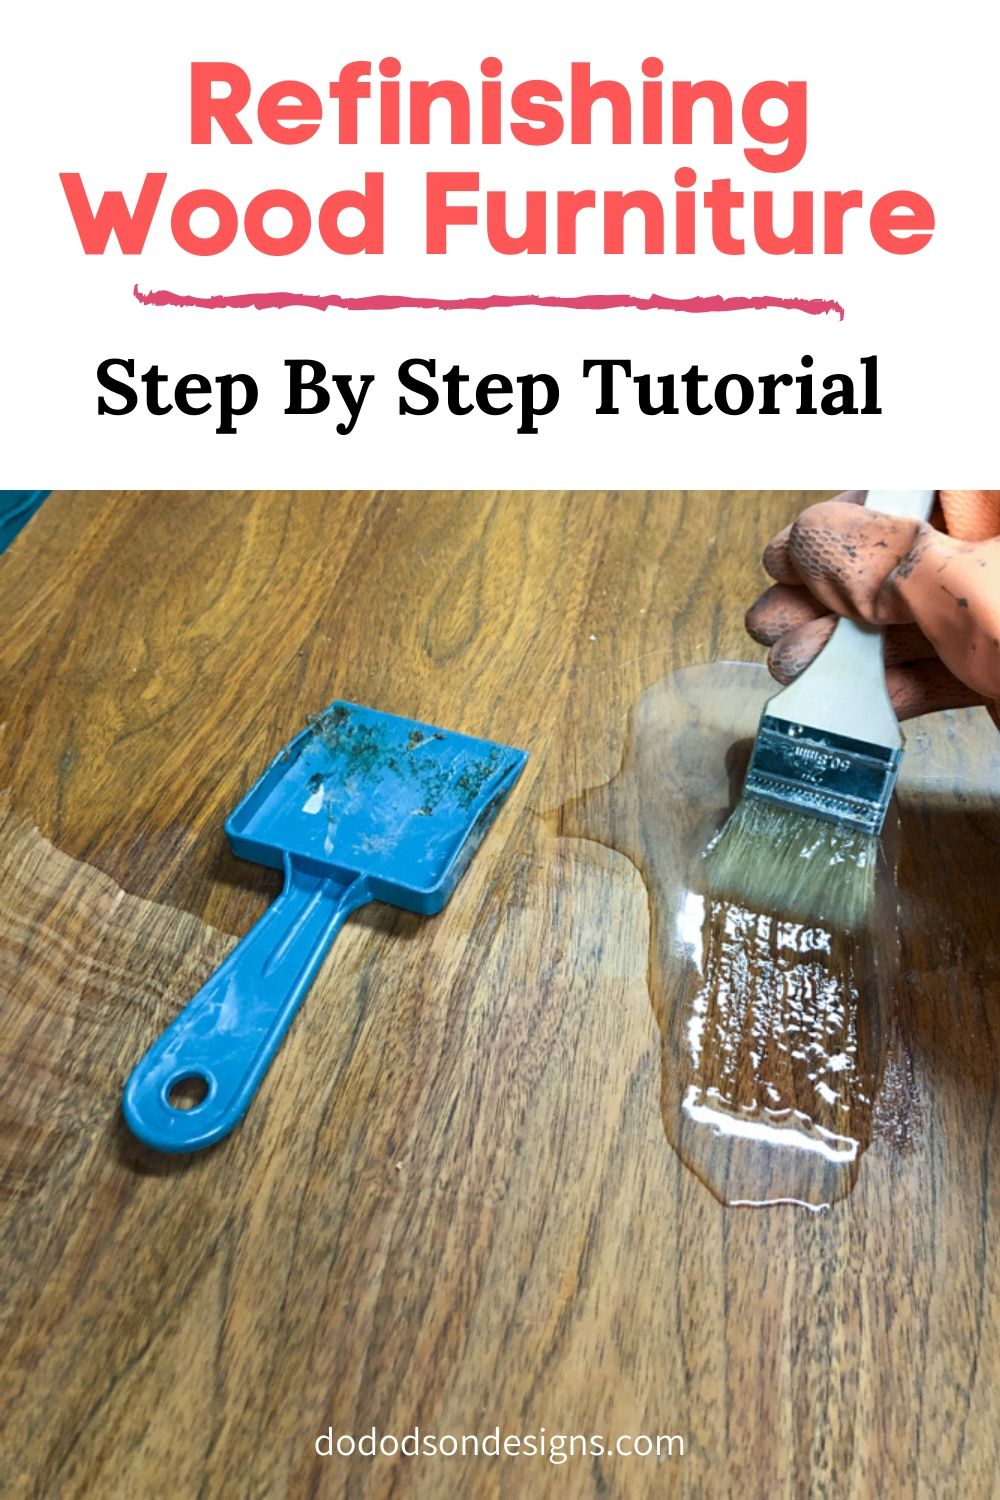 Refinishing wood furniture doesn\'t have to be hard. The best part of it all is the beautiful DIY Gel stain wood finish that you get to brag about.